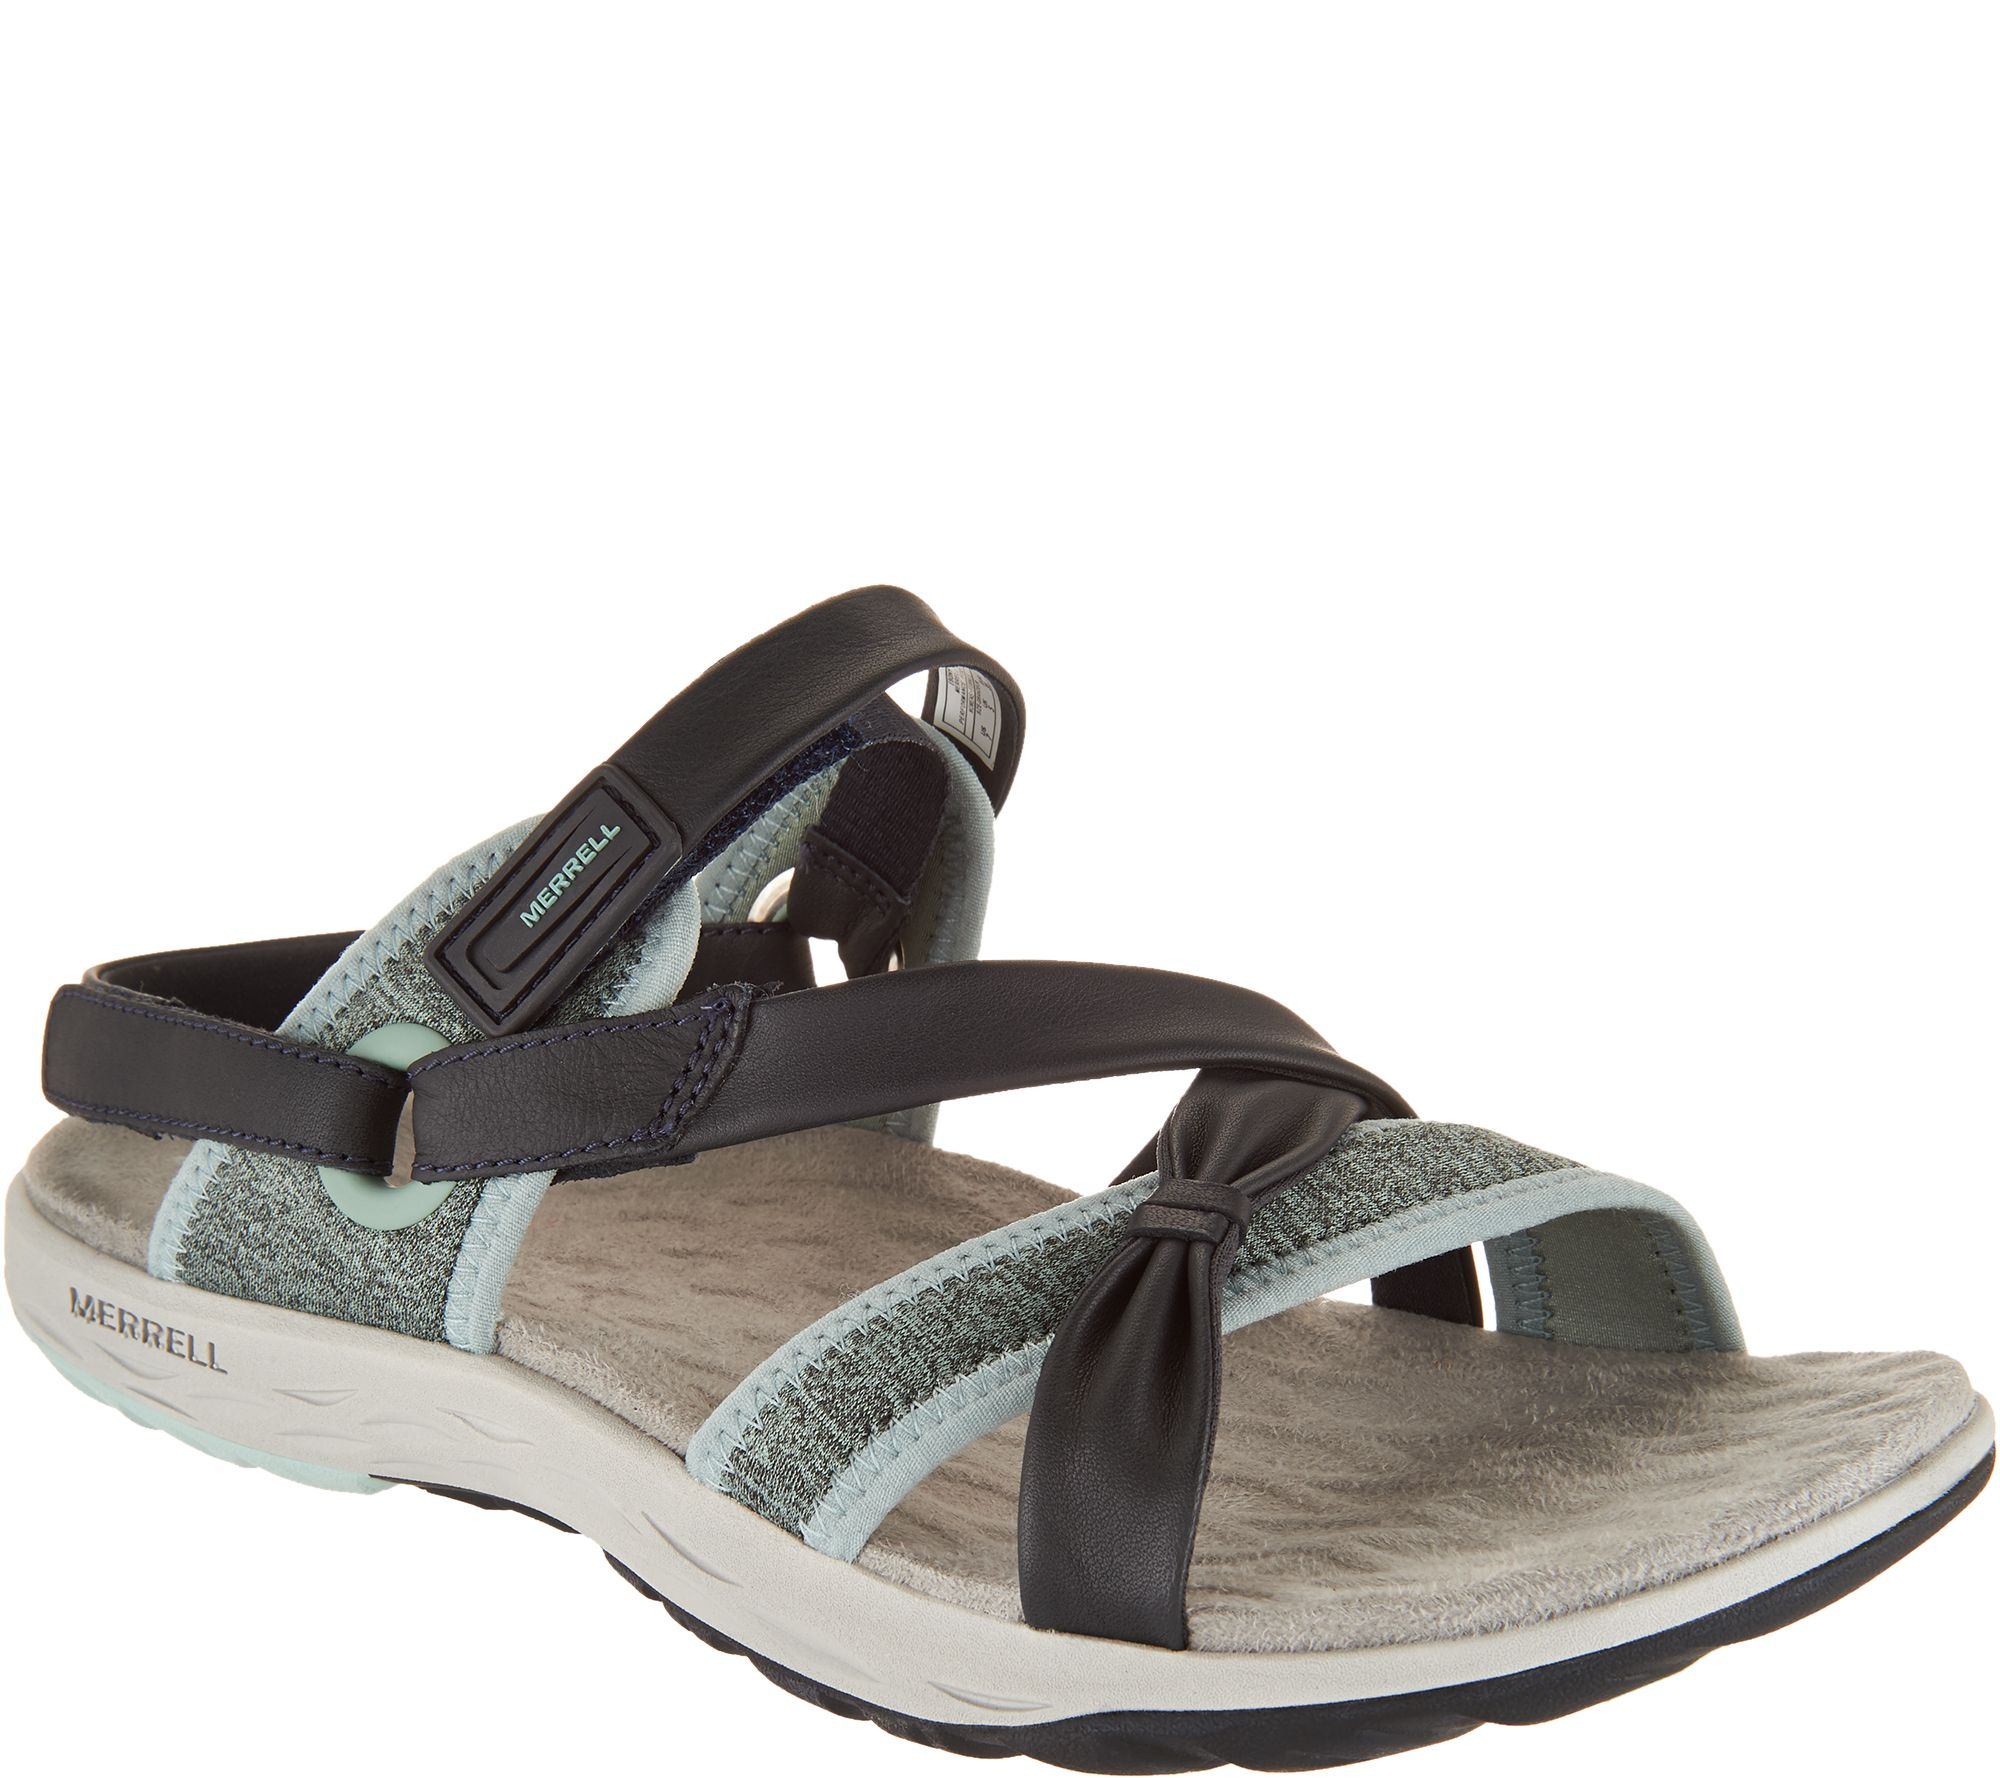 5dd4c1b512db Merrell Leather Sport Sandals - Vesper Lattice - Page 1 — QVC.com